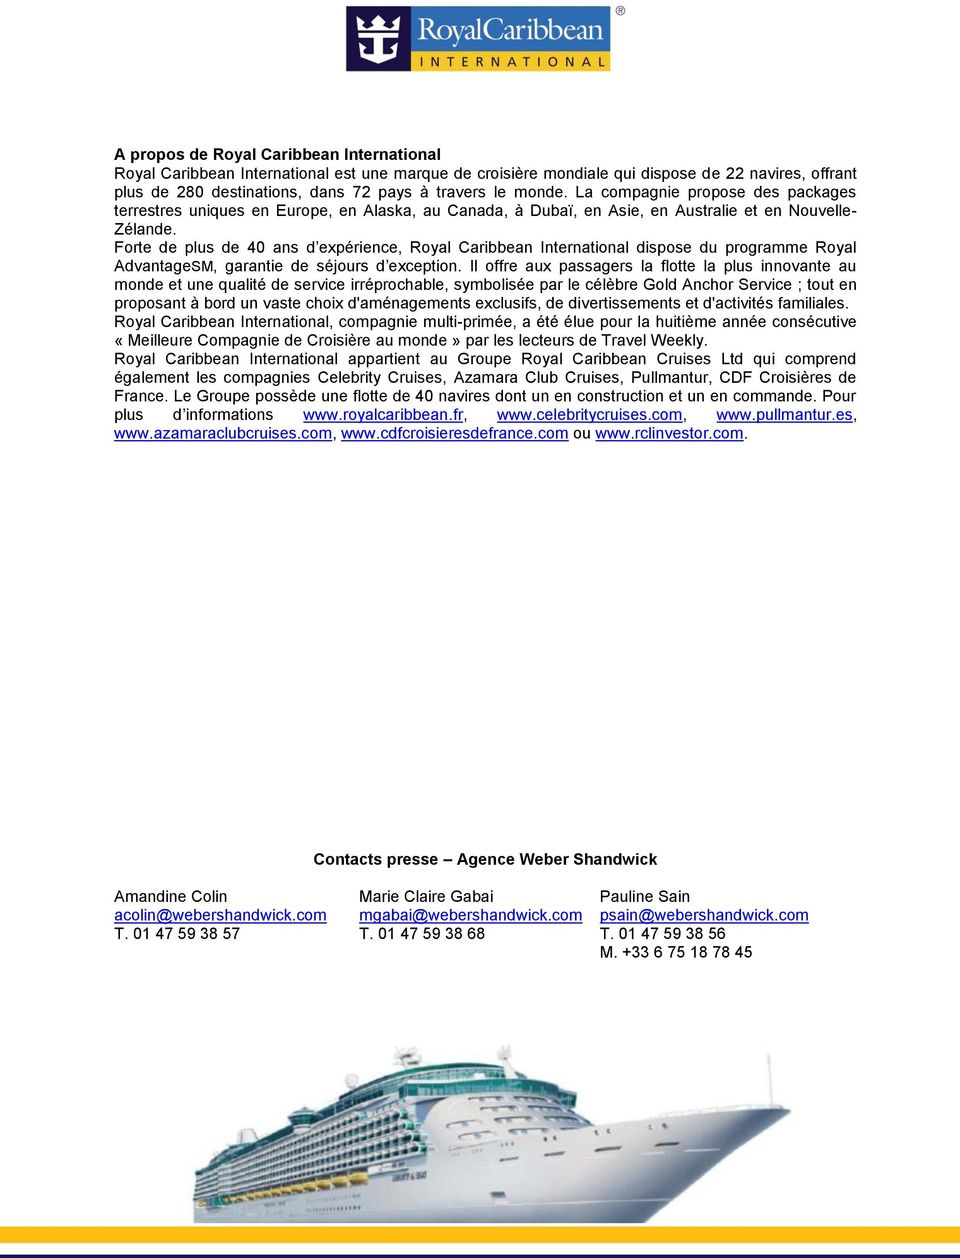 Forte de plus de 40 ans d expérience, Royal Caribbean International dispose du programme Royal AdvantageSM, garantie de séjours d exception.